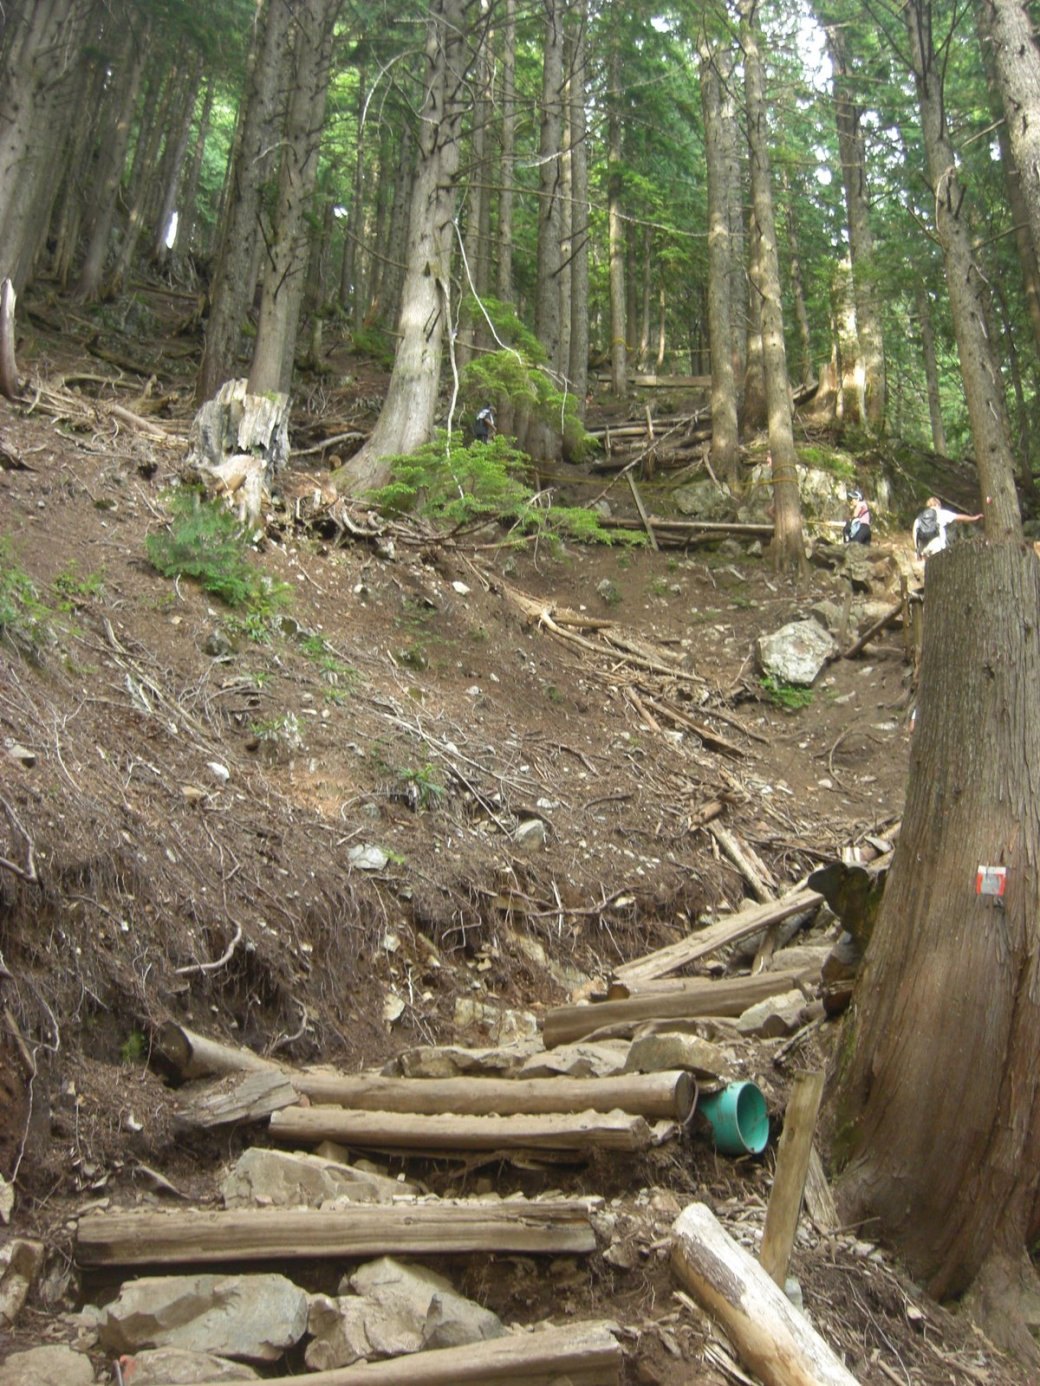 Its a 2,830 steps up the side of Grouse Mountain. You gain 853m over 2.9km. That's an average incline of 30 degrees.